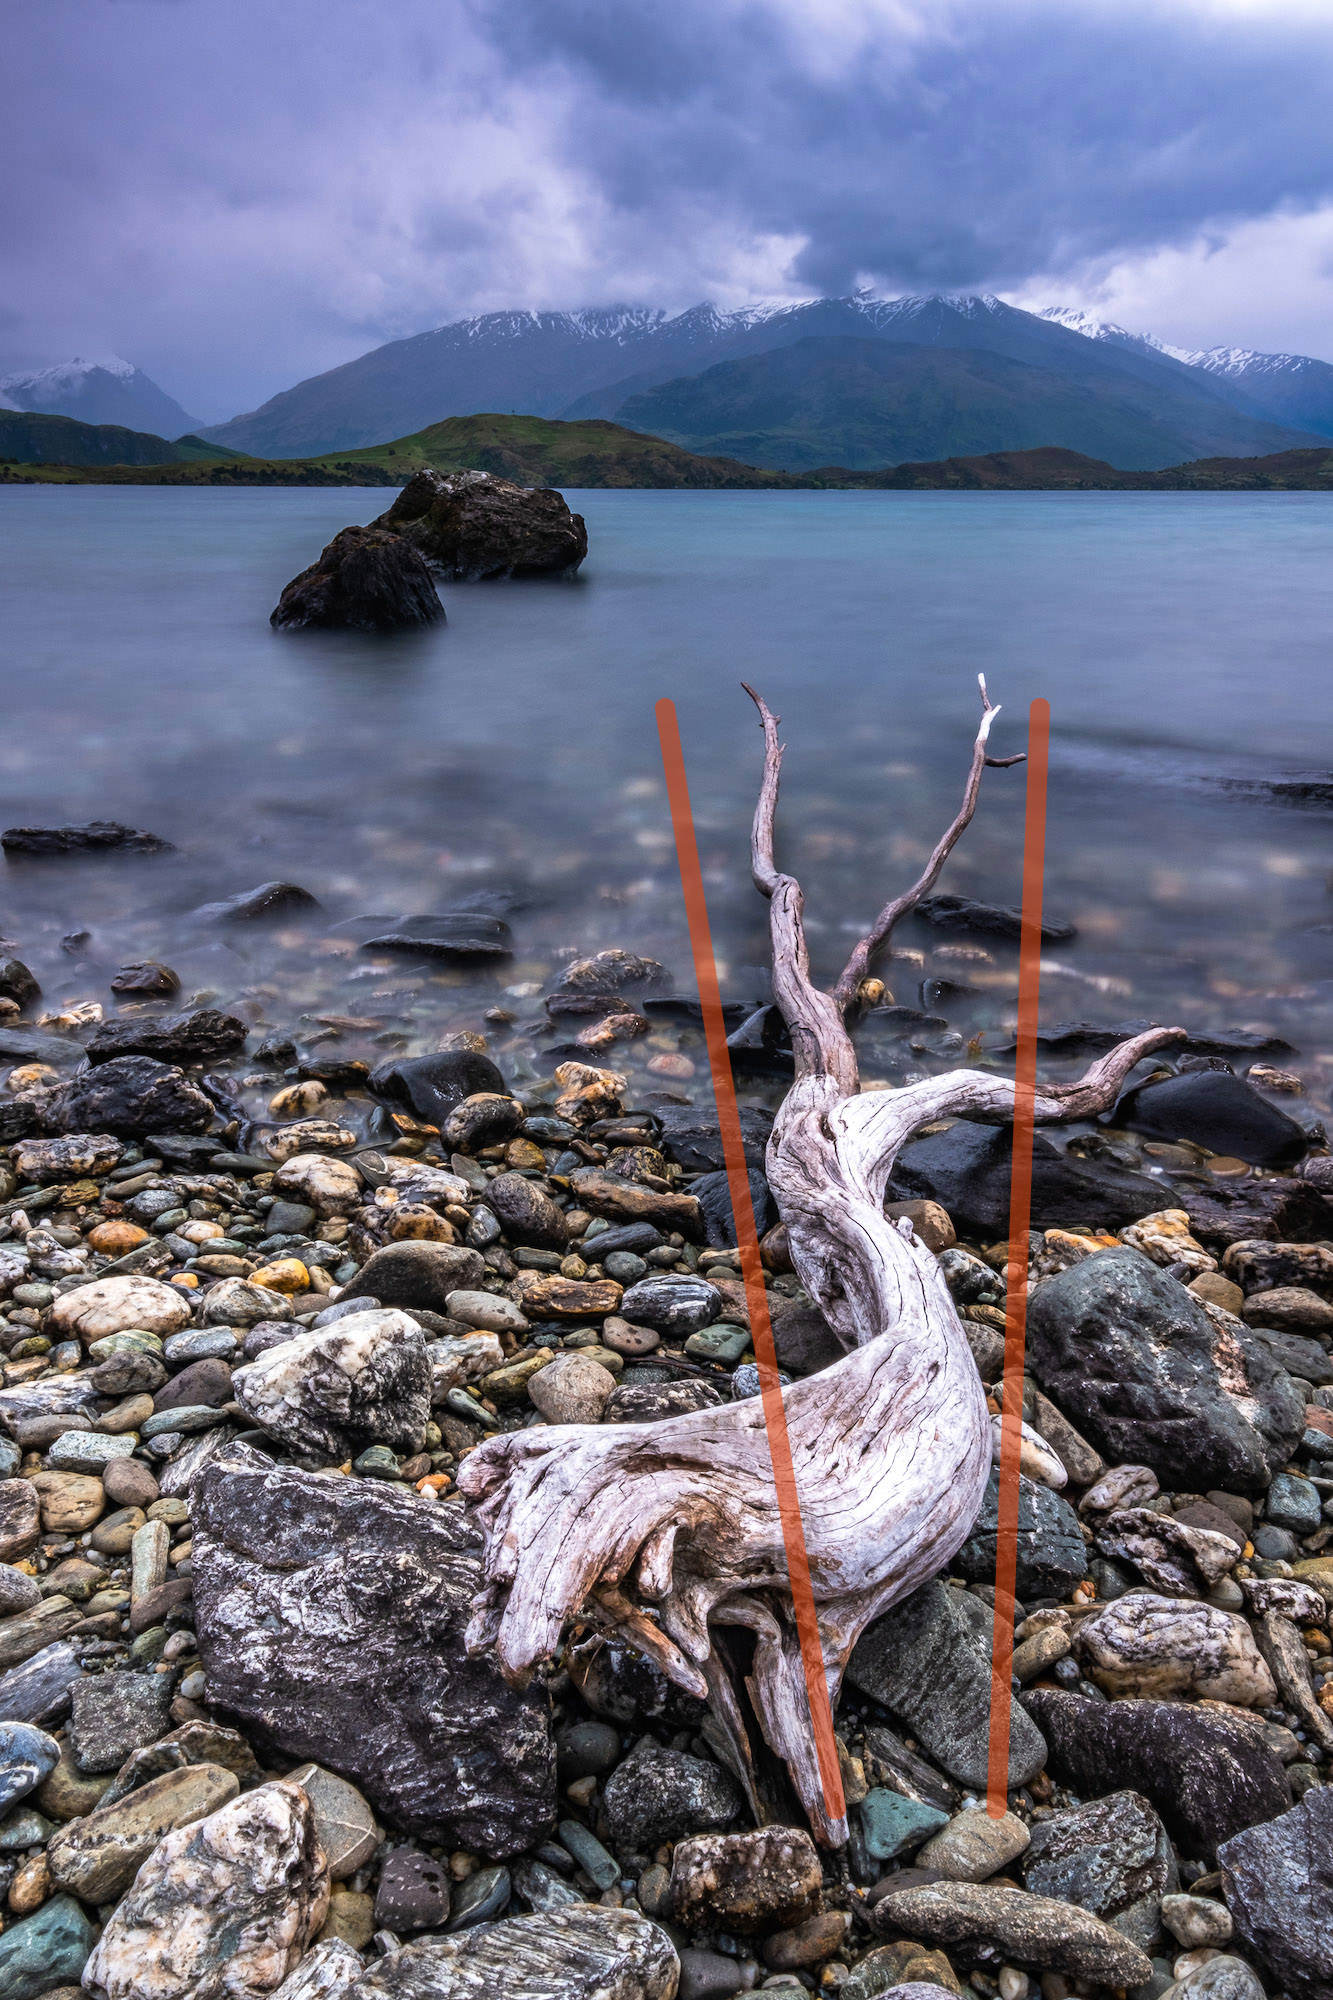 Washed up driftwood and pebbles make for a textured foreground as The Remakables are almost swallowed by low clouds; Queenstown, New Zealand. With added leading lines to show compositional technique.